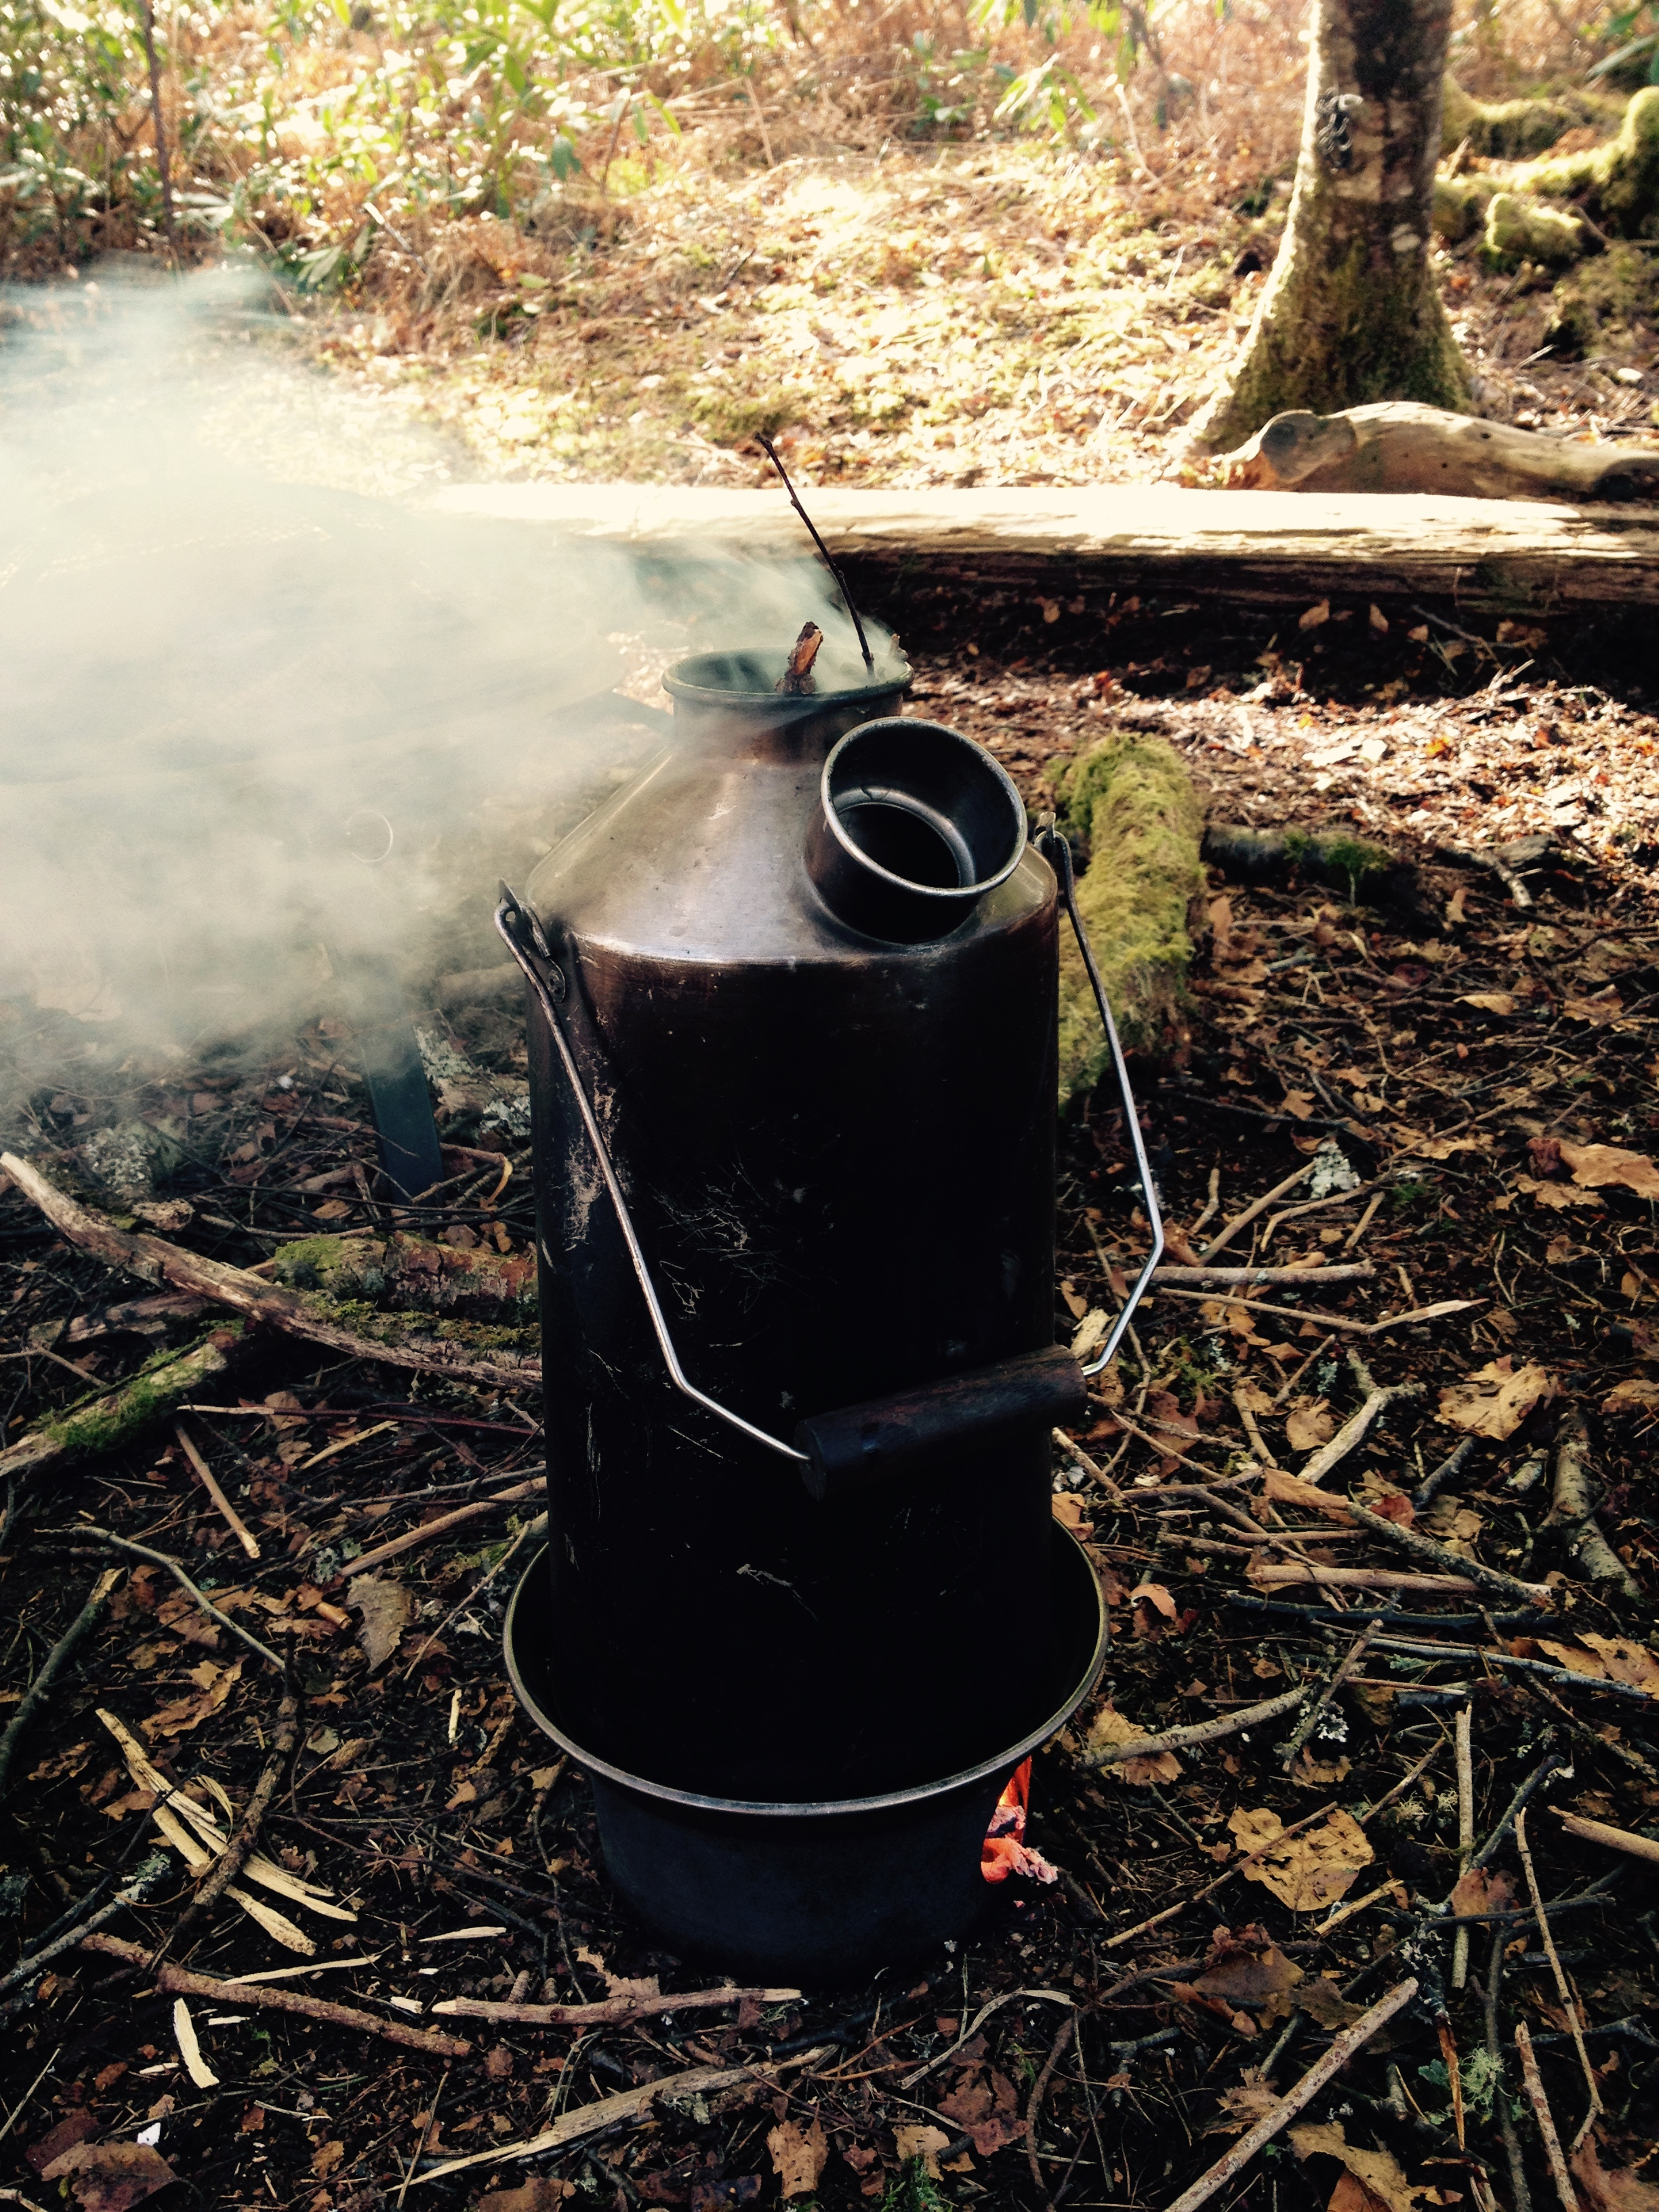 kelly kettle bushcraft adventures